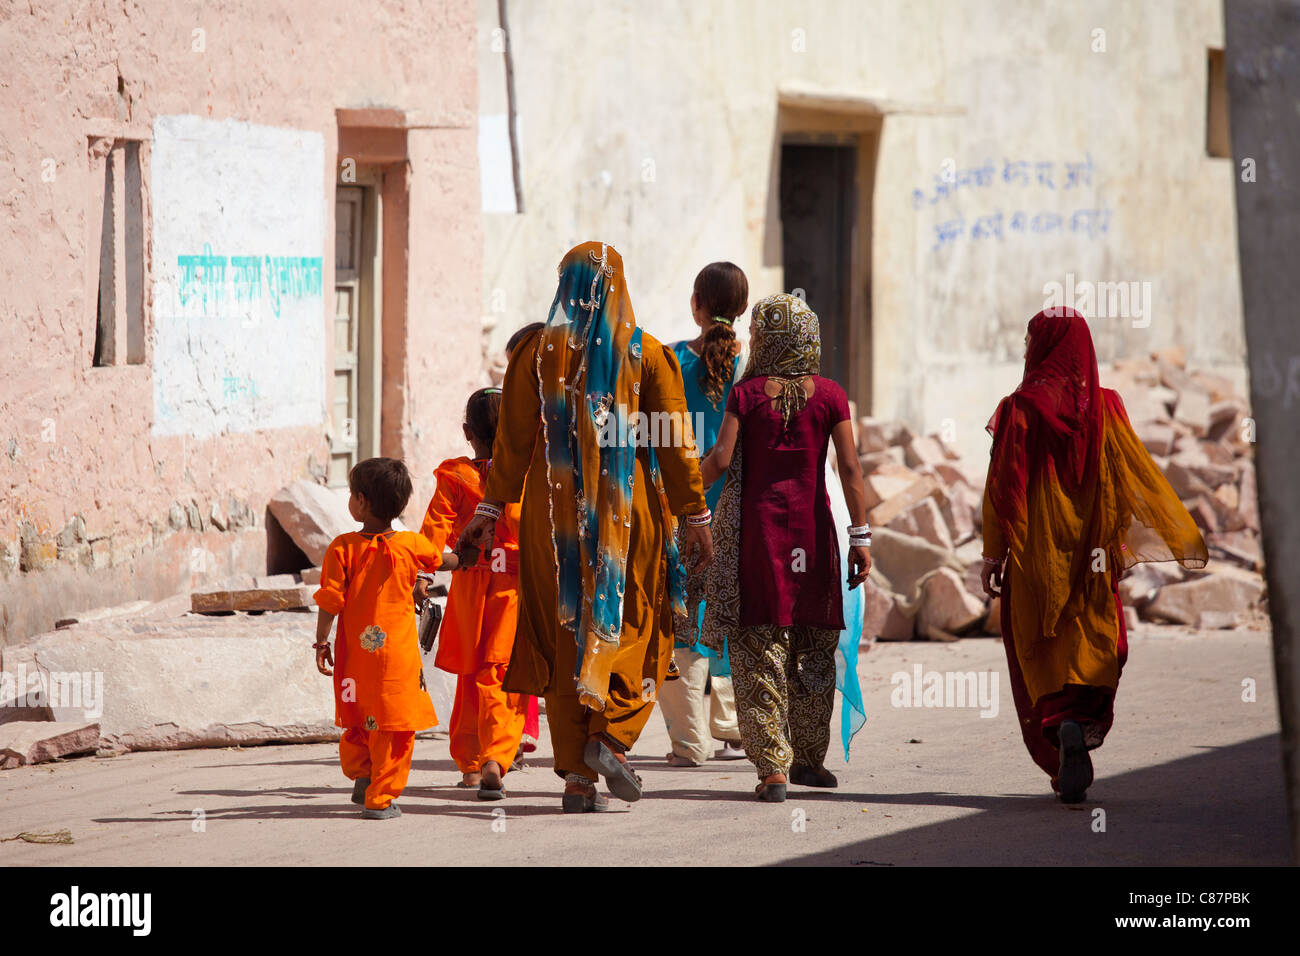 Indian women and girls dressed as wedding guests walking to the wedding in village of Rohet in Rajasthan, Northern - Stock Image